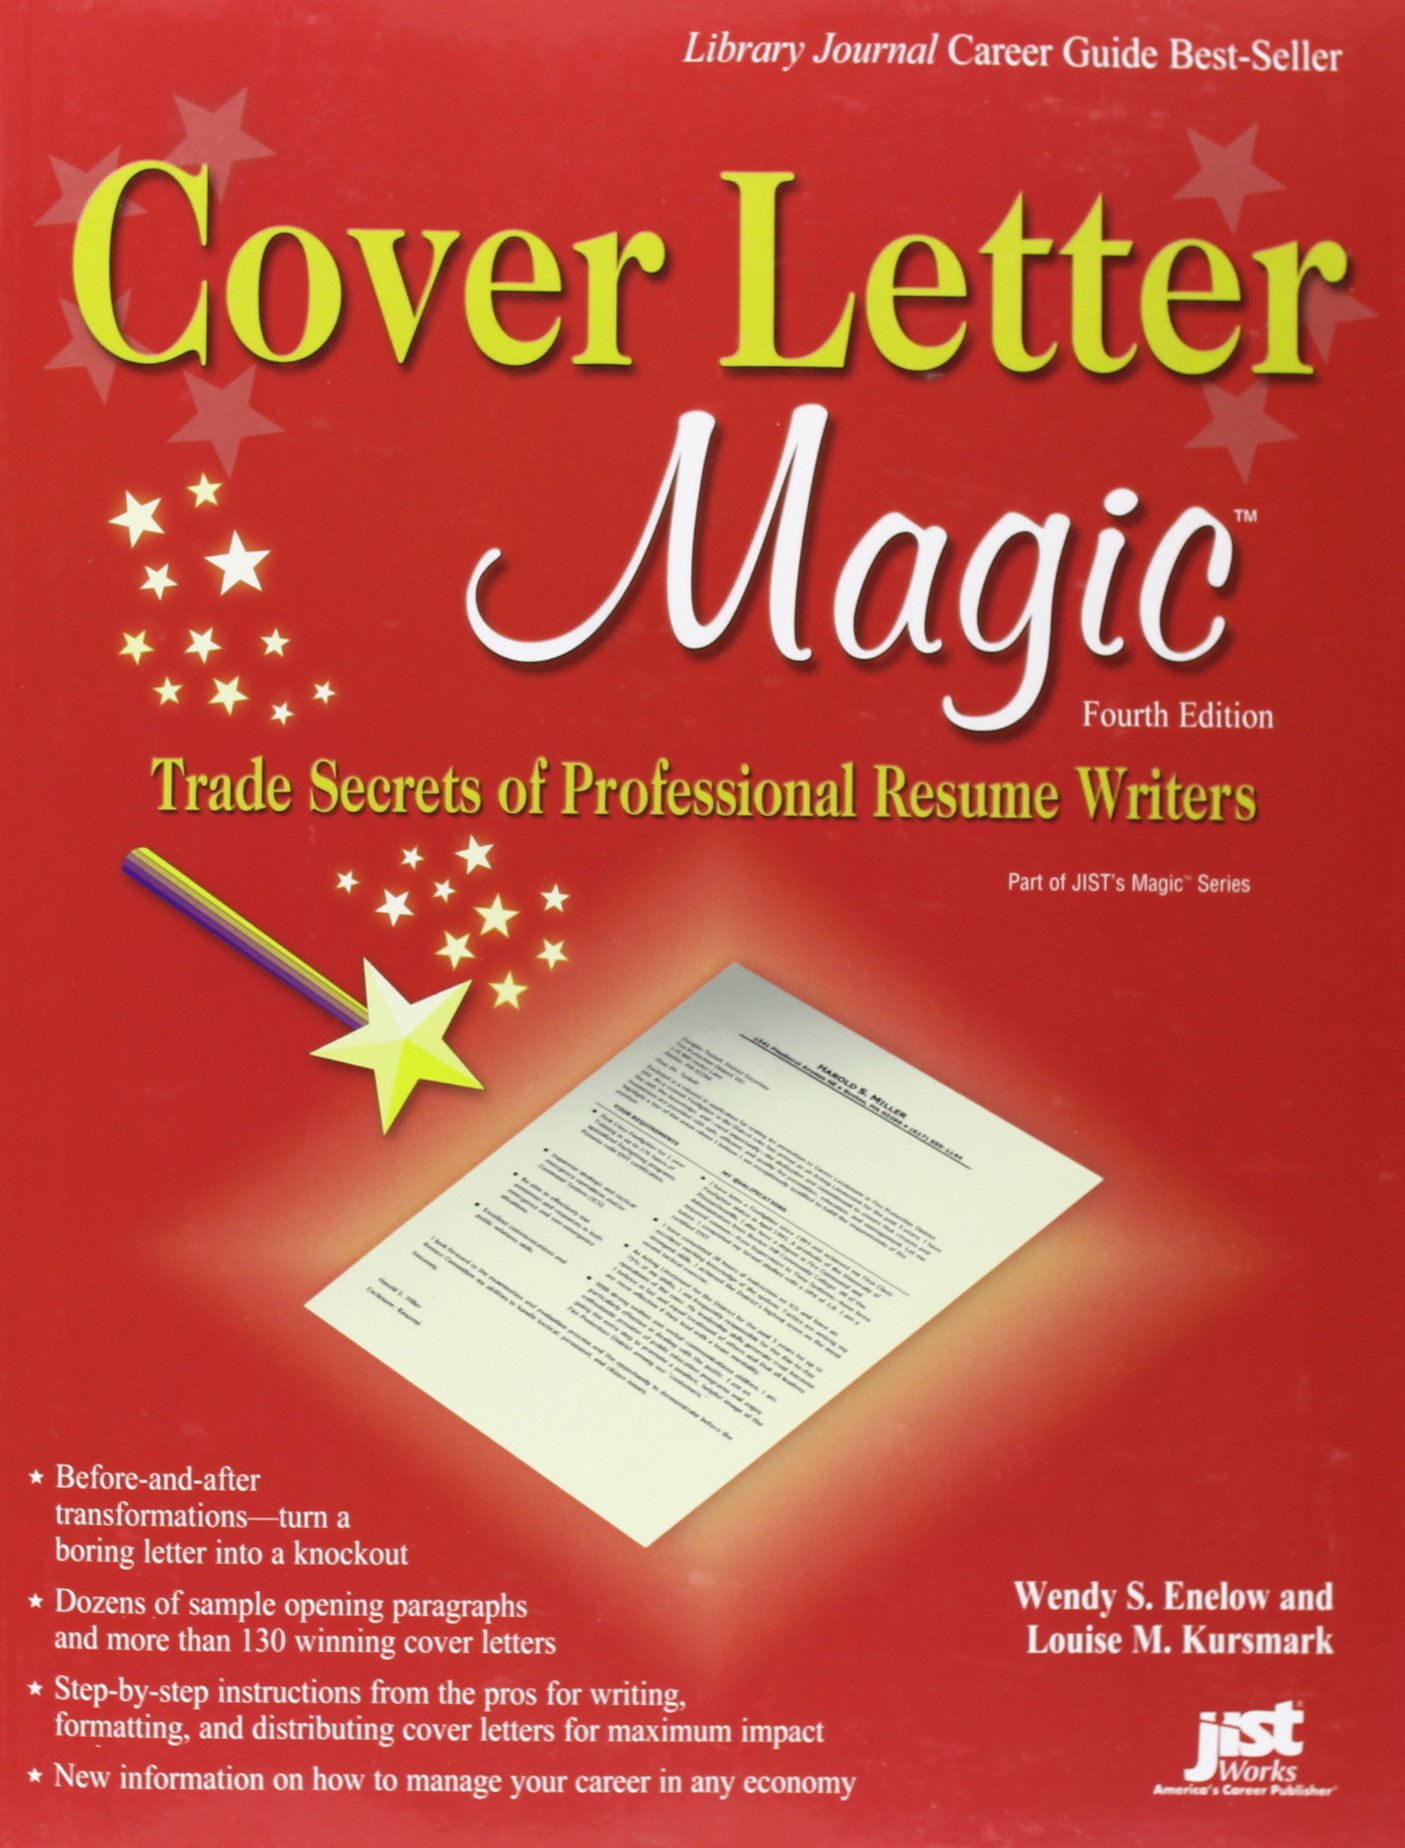 Cover Letter Magic 4th Ed Trade Secrets Of Professional Resume Writers Wendy S Enelow Louise M Kursmark 9781593577353 Amazon Com Books